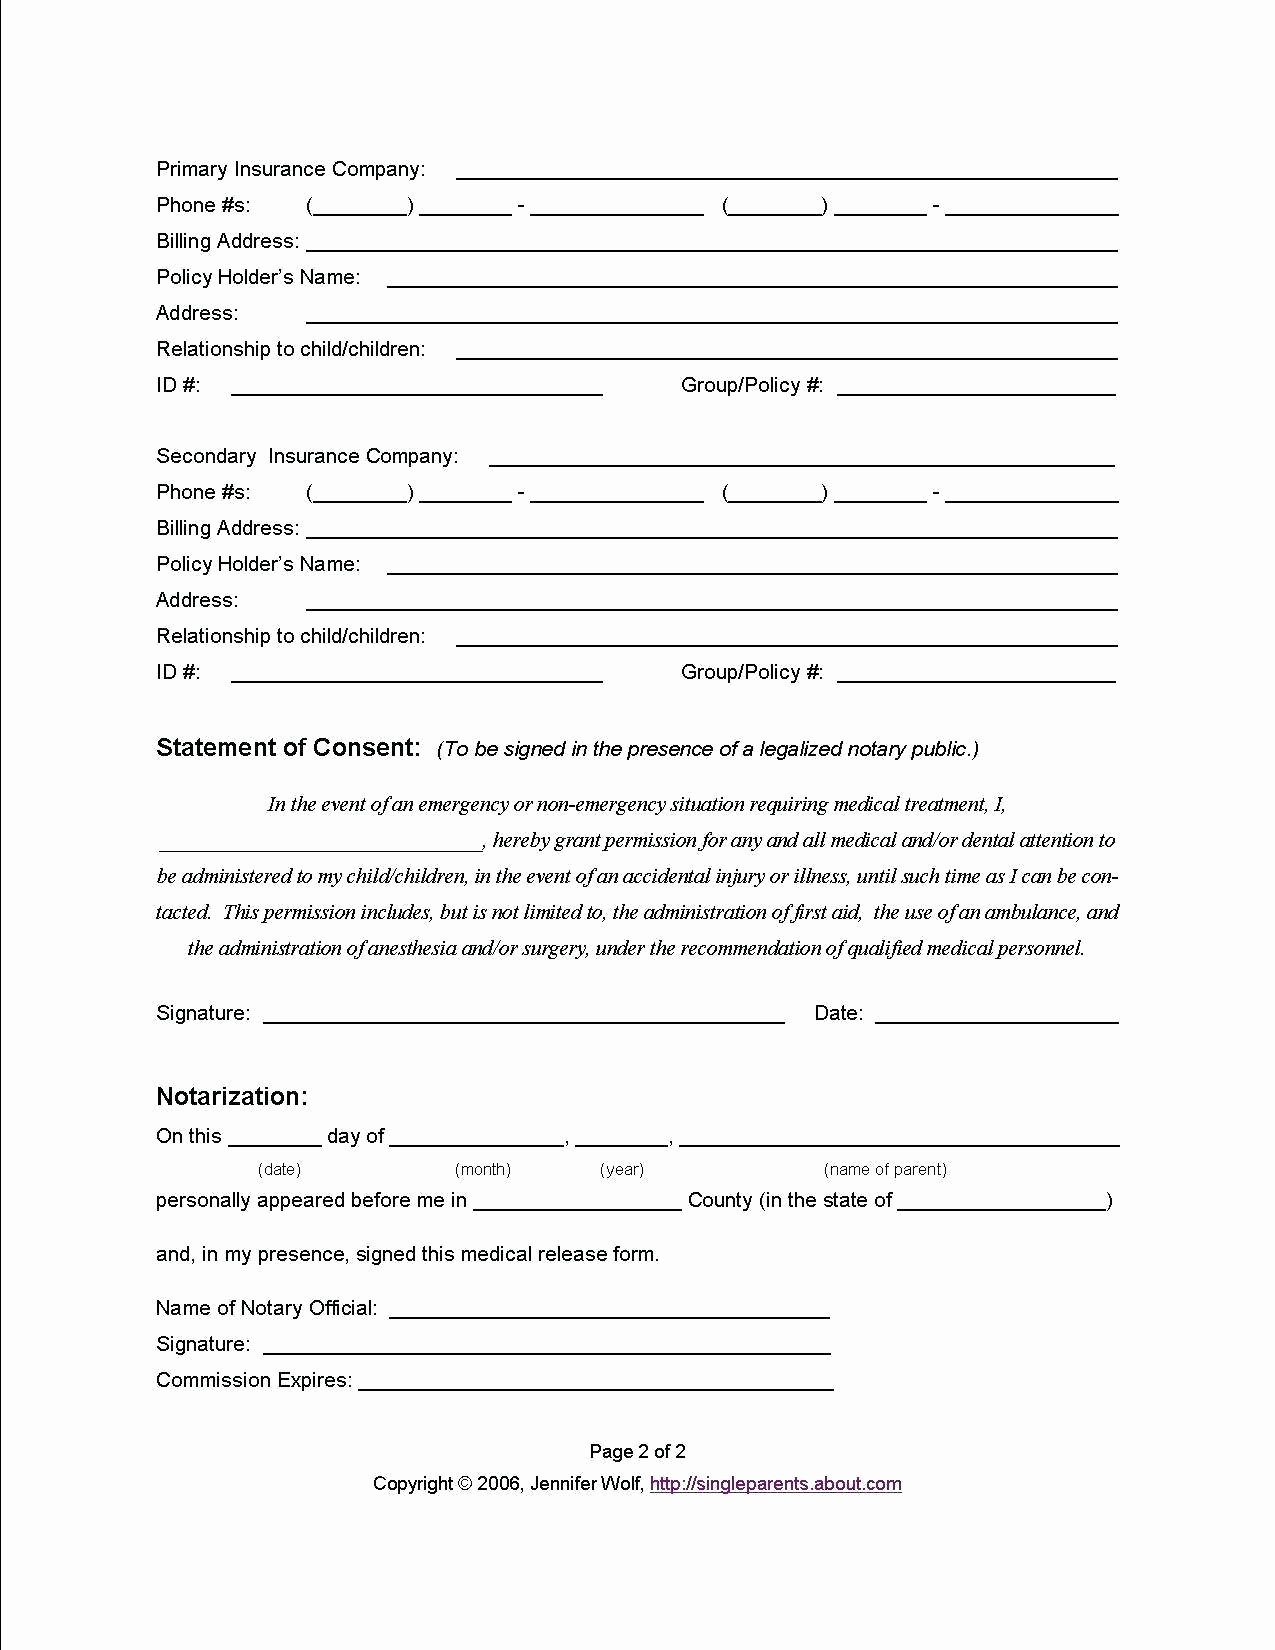 Free Printable Medical forms Fresh Free Printable Child Medical Consent form Letter Examples